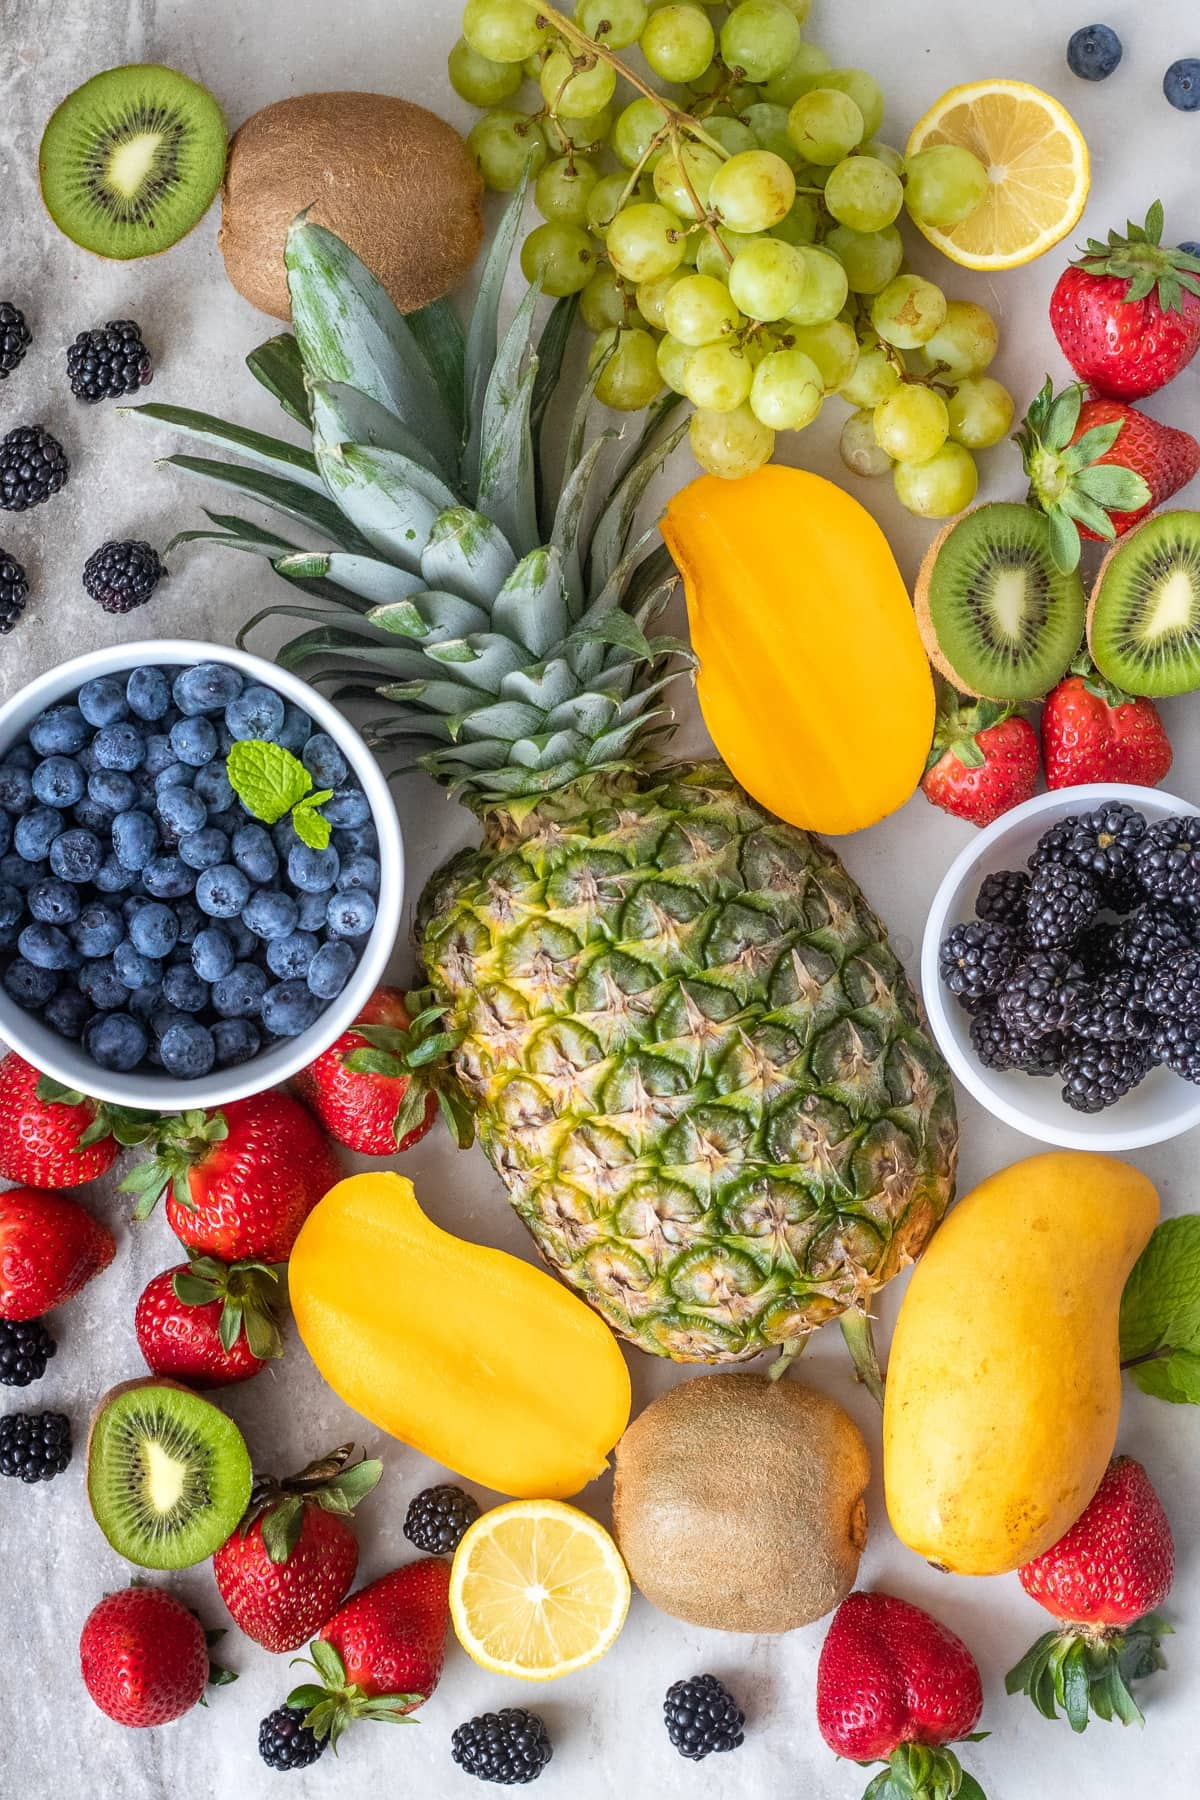 Ingredients for a healthy fresh fruit salad.